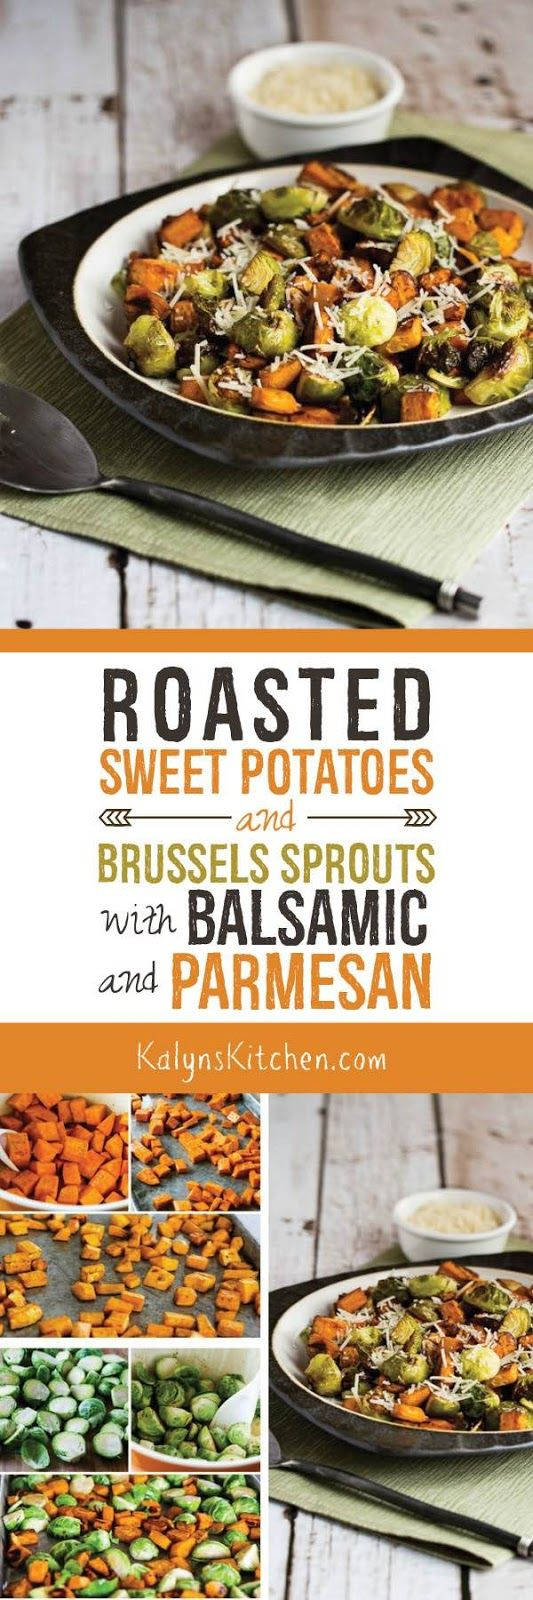 Roasted Sweet Potatoes and Brussels Sprouts with Balsamic and Parmesan [KalynsKitchen.com]